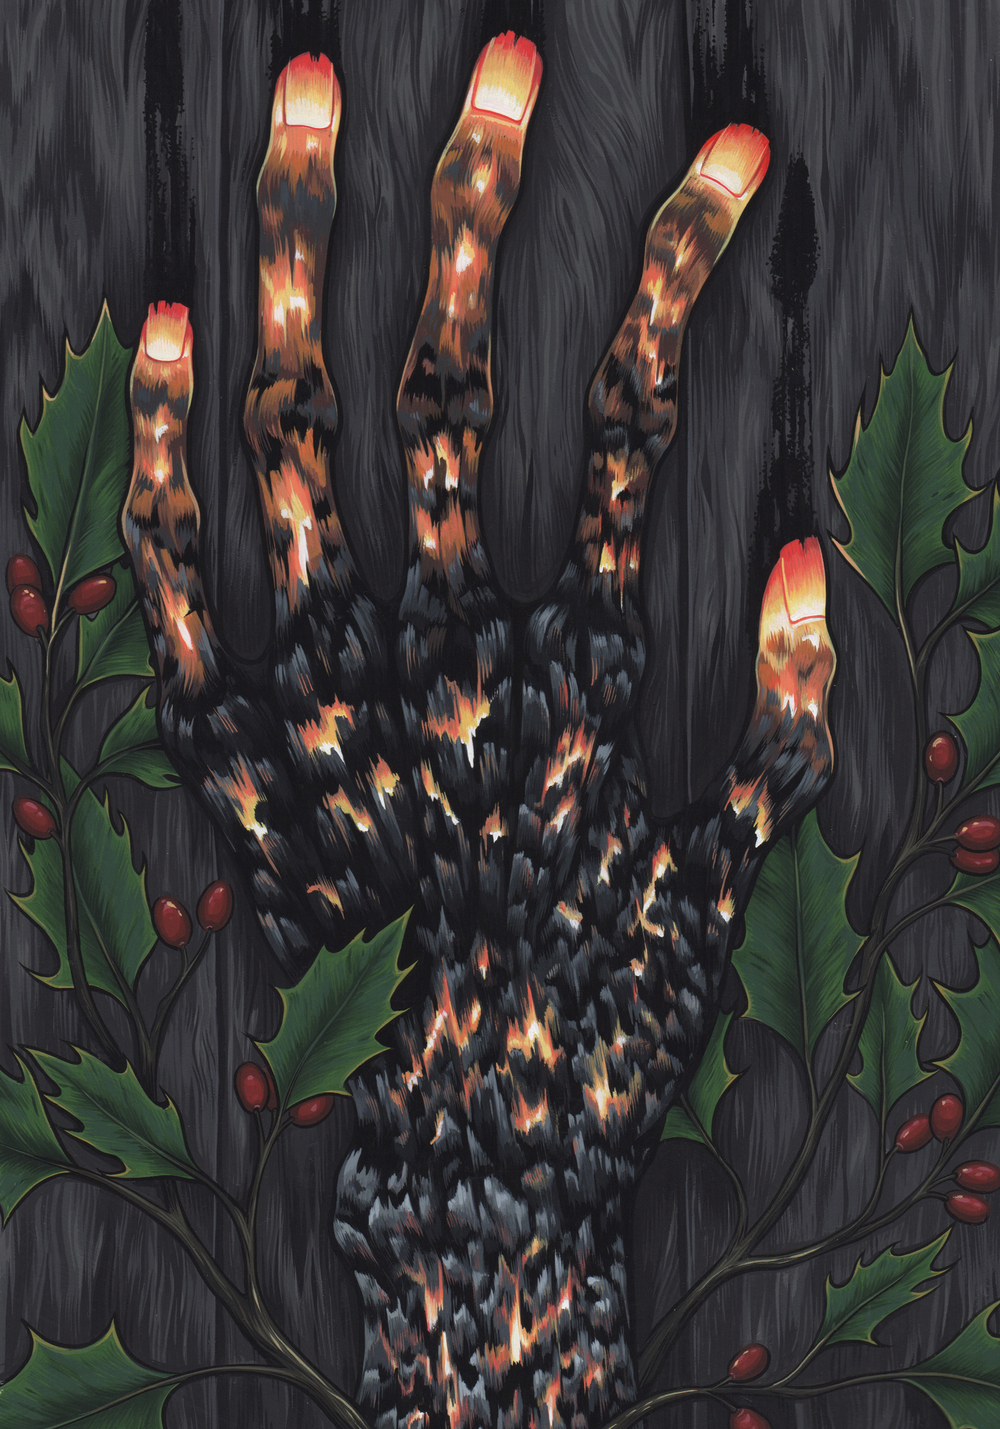 The Chimney- Commissioned work based on a short story by Ramsey Campbell, 2015  Gouache on paper